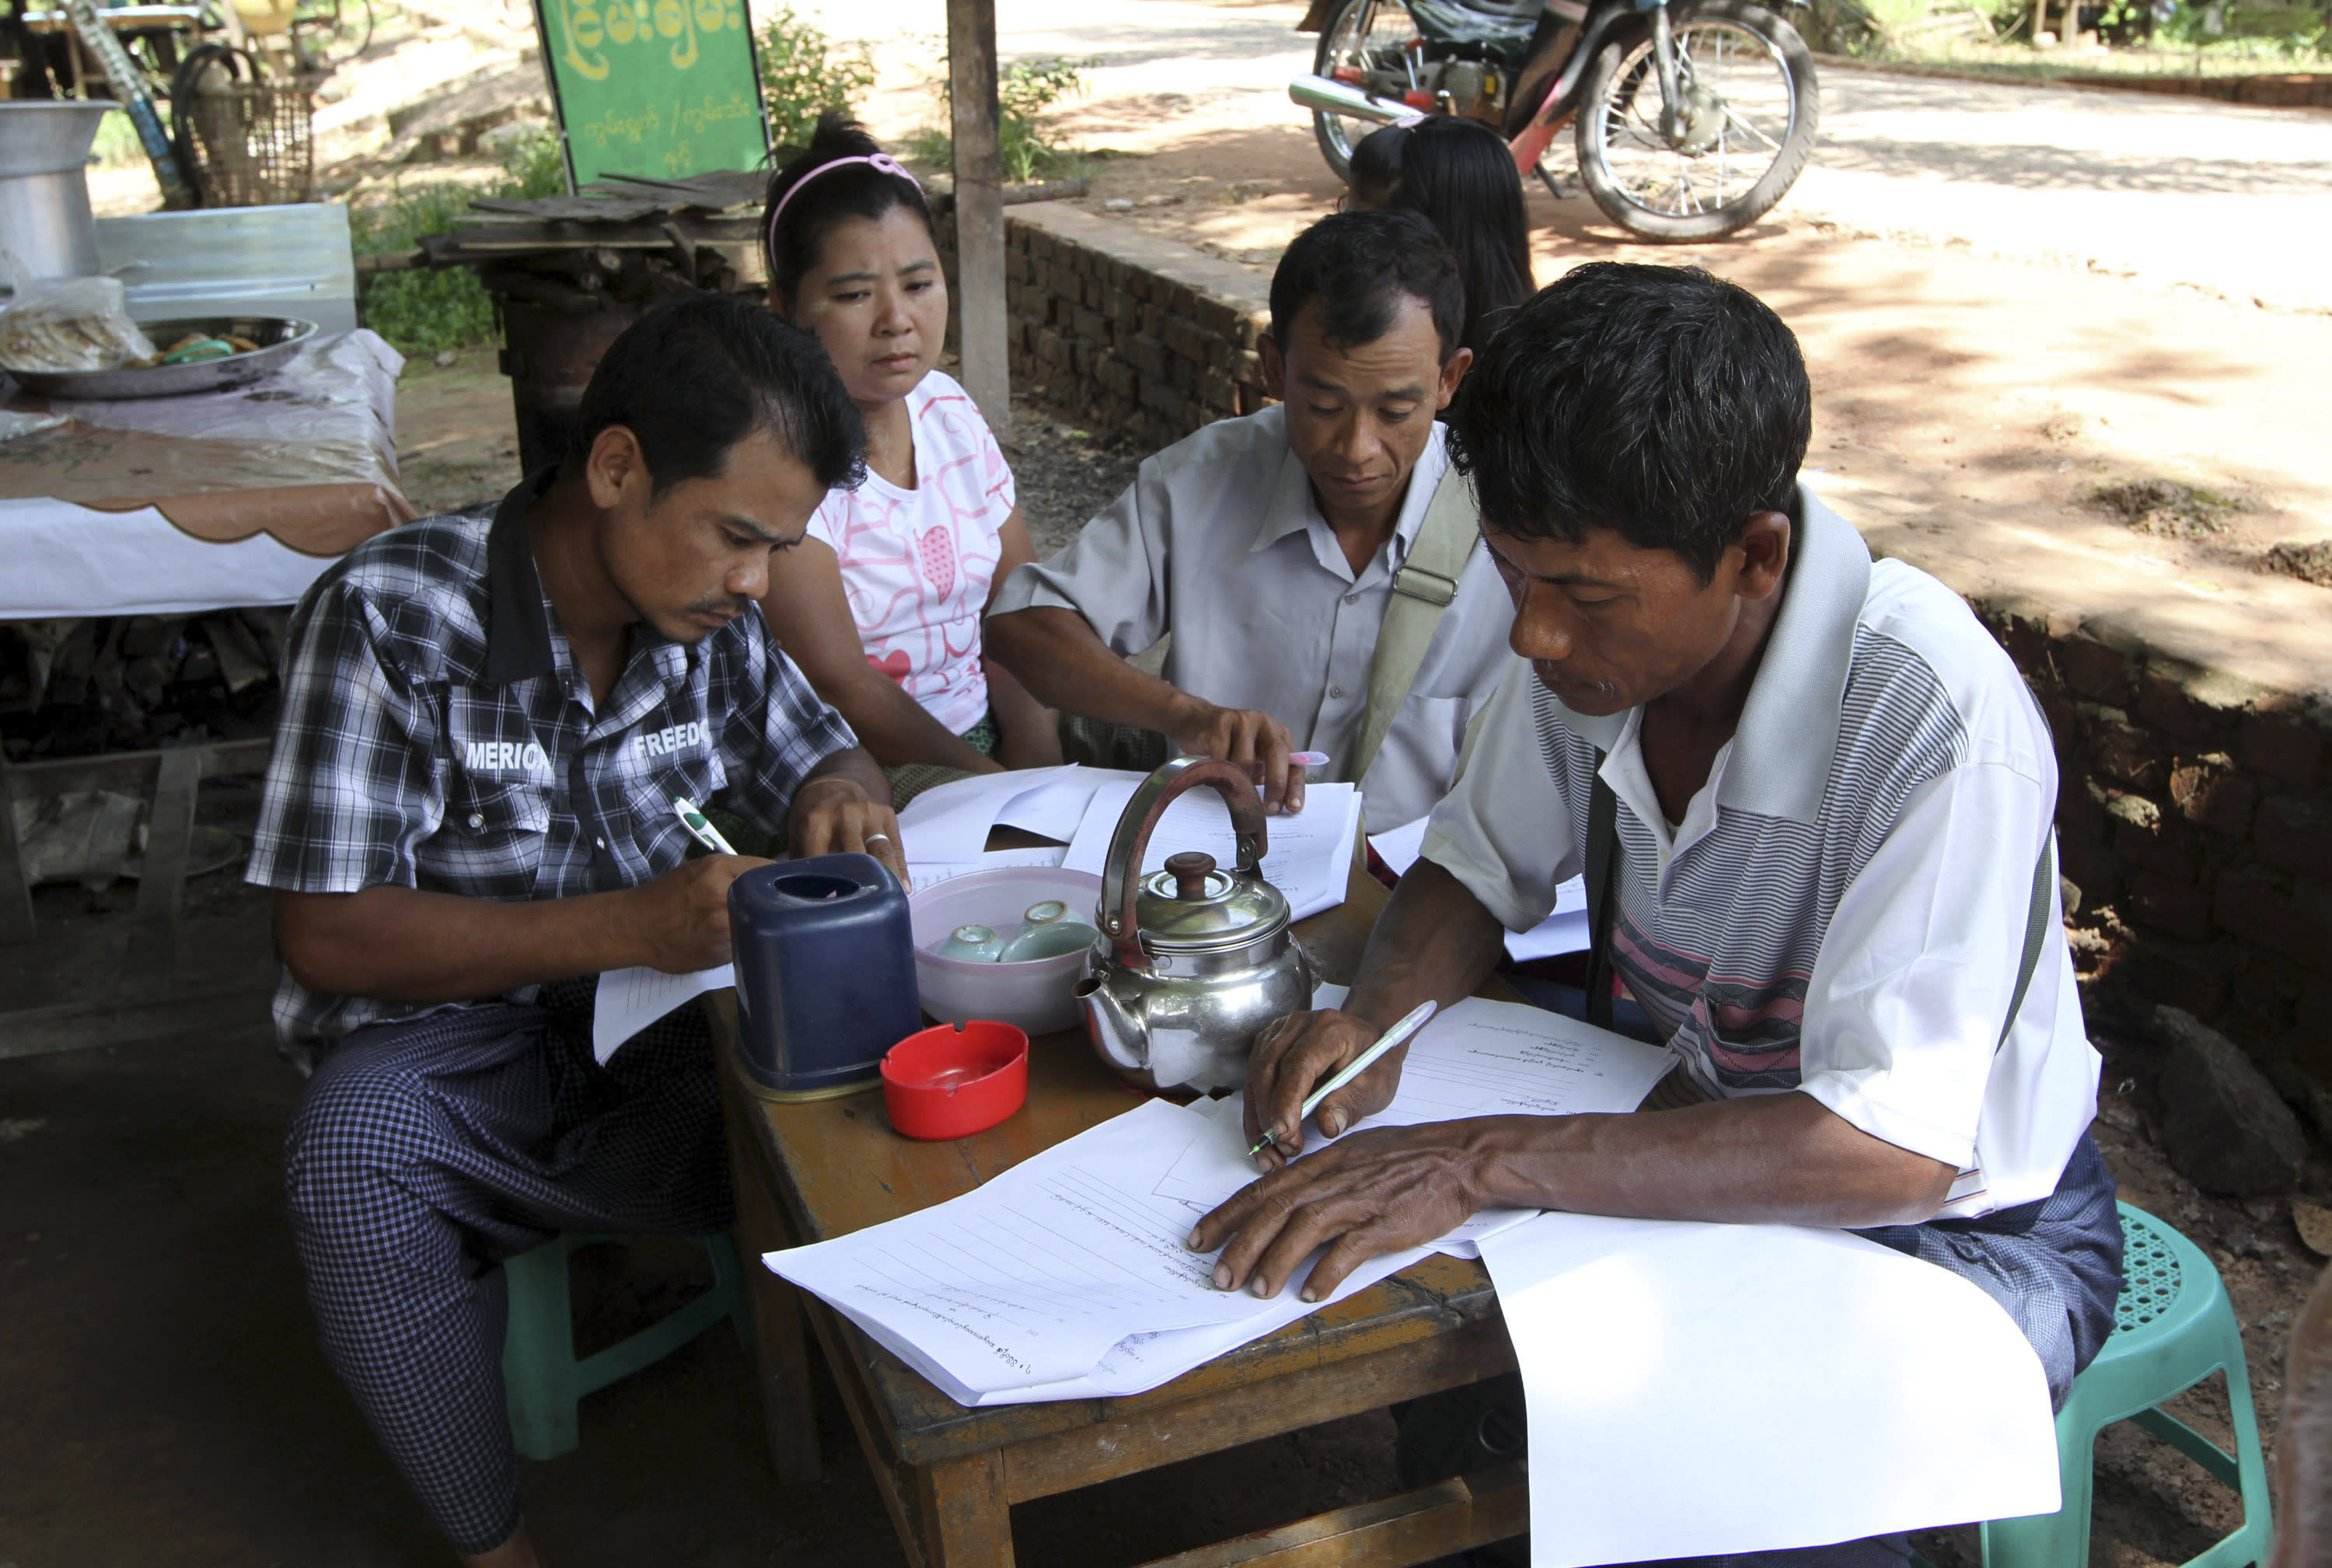 In this photo taken on Sept. 15, 2012, Myanmar landless farmers gather outside the home of Nay Myo Wai, an activist and politician who is leading the farmers in their fight against the Zaykabar Company to sign and thumbprint petitions asking the company for more money, in Yangon, Myanmar. The landscape of Mingaladon township, northern outskirts of Yangon, tells a story of economic upheaval. Skeletons of factories for a new industrial zone rise from thick green rice paddies local farmers say were seized illegally by the Zaykabar Company, one of Myanmar's most powerful companies. Human rights groups say land battles could intensify because companies tied to the military and business elite are rushing to grab land as the country emerges from five decades of isolation and opens its economy. (AP Photo/Khin Maung Win)